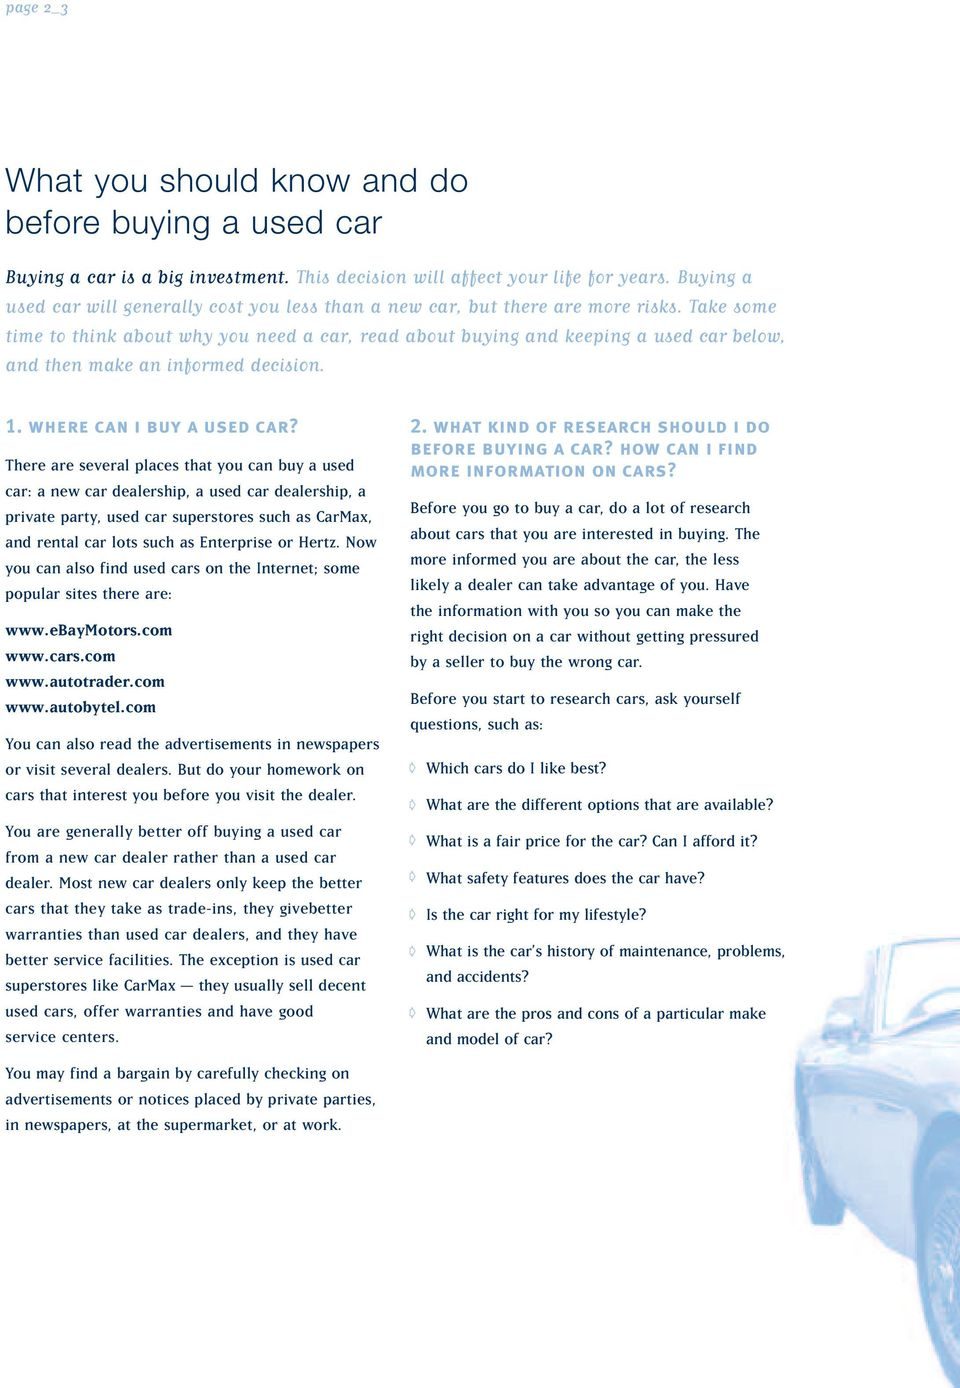 Take some time to think about why you need a car, read about buying and keeping a used car below, and then make an informed decision. 1. where can i buy a used car?